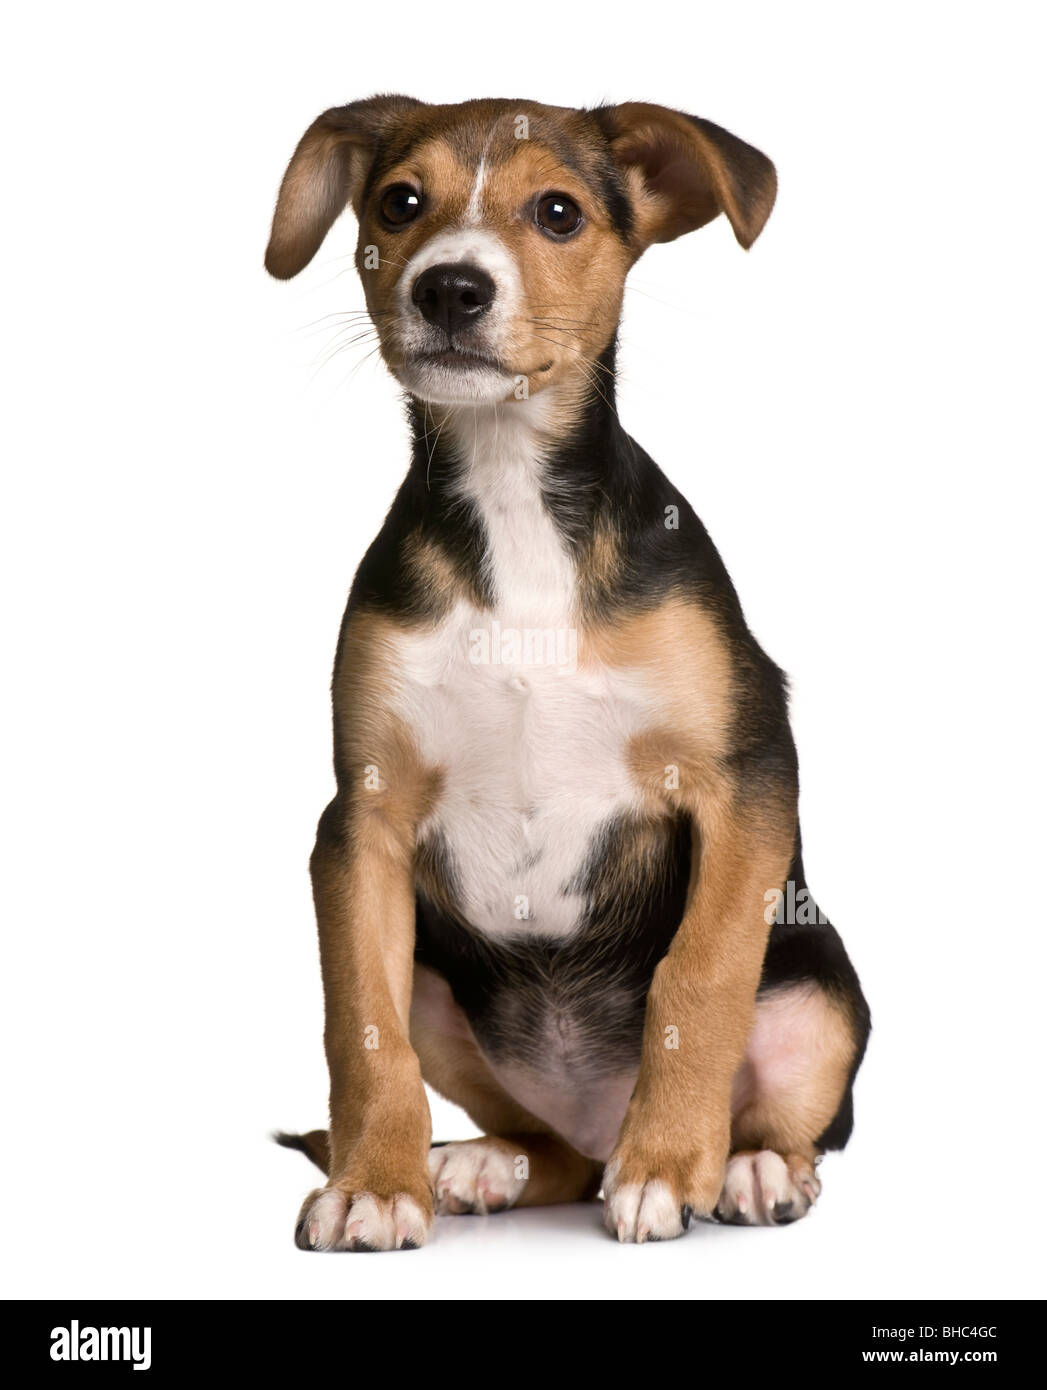 crossbreed with a jack russell and a pincher puppy 3 months old